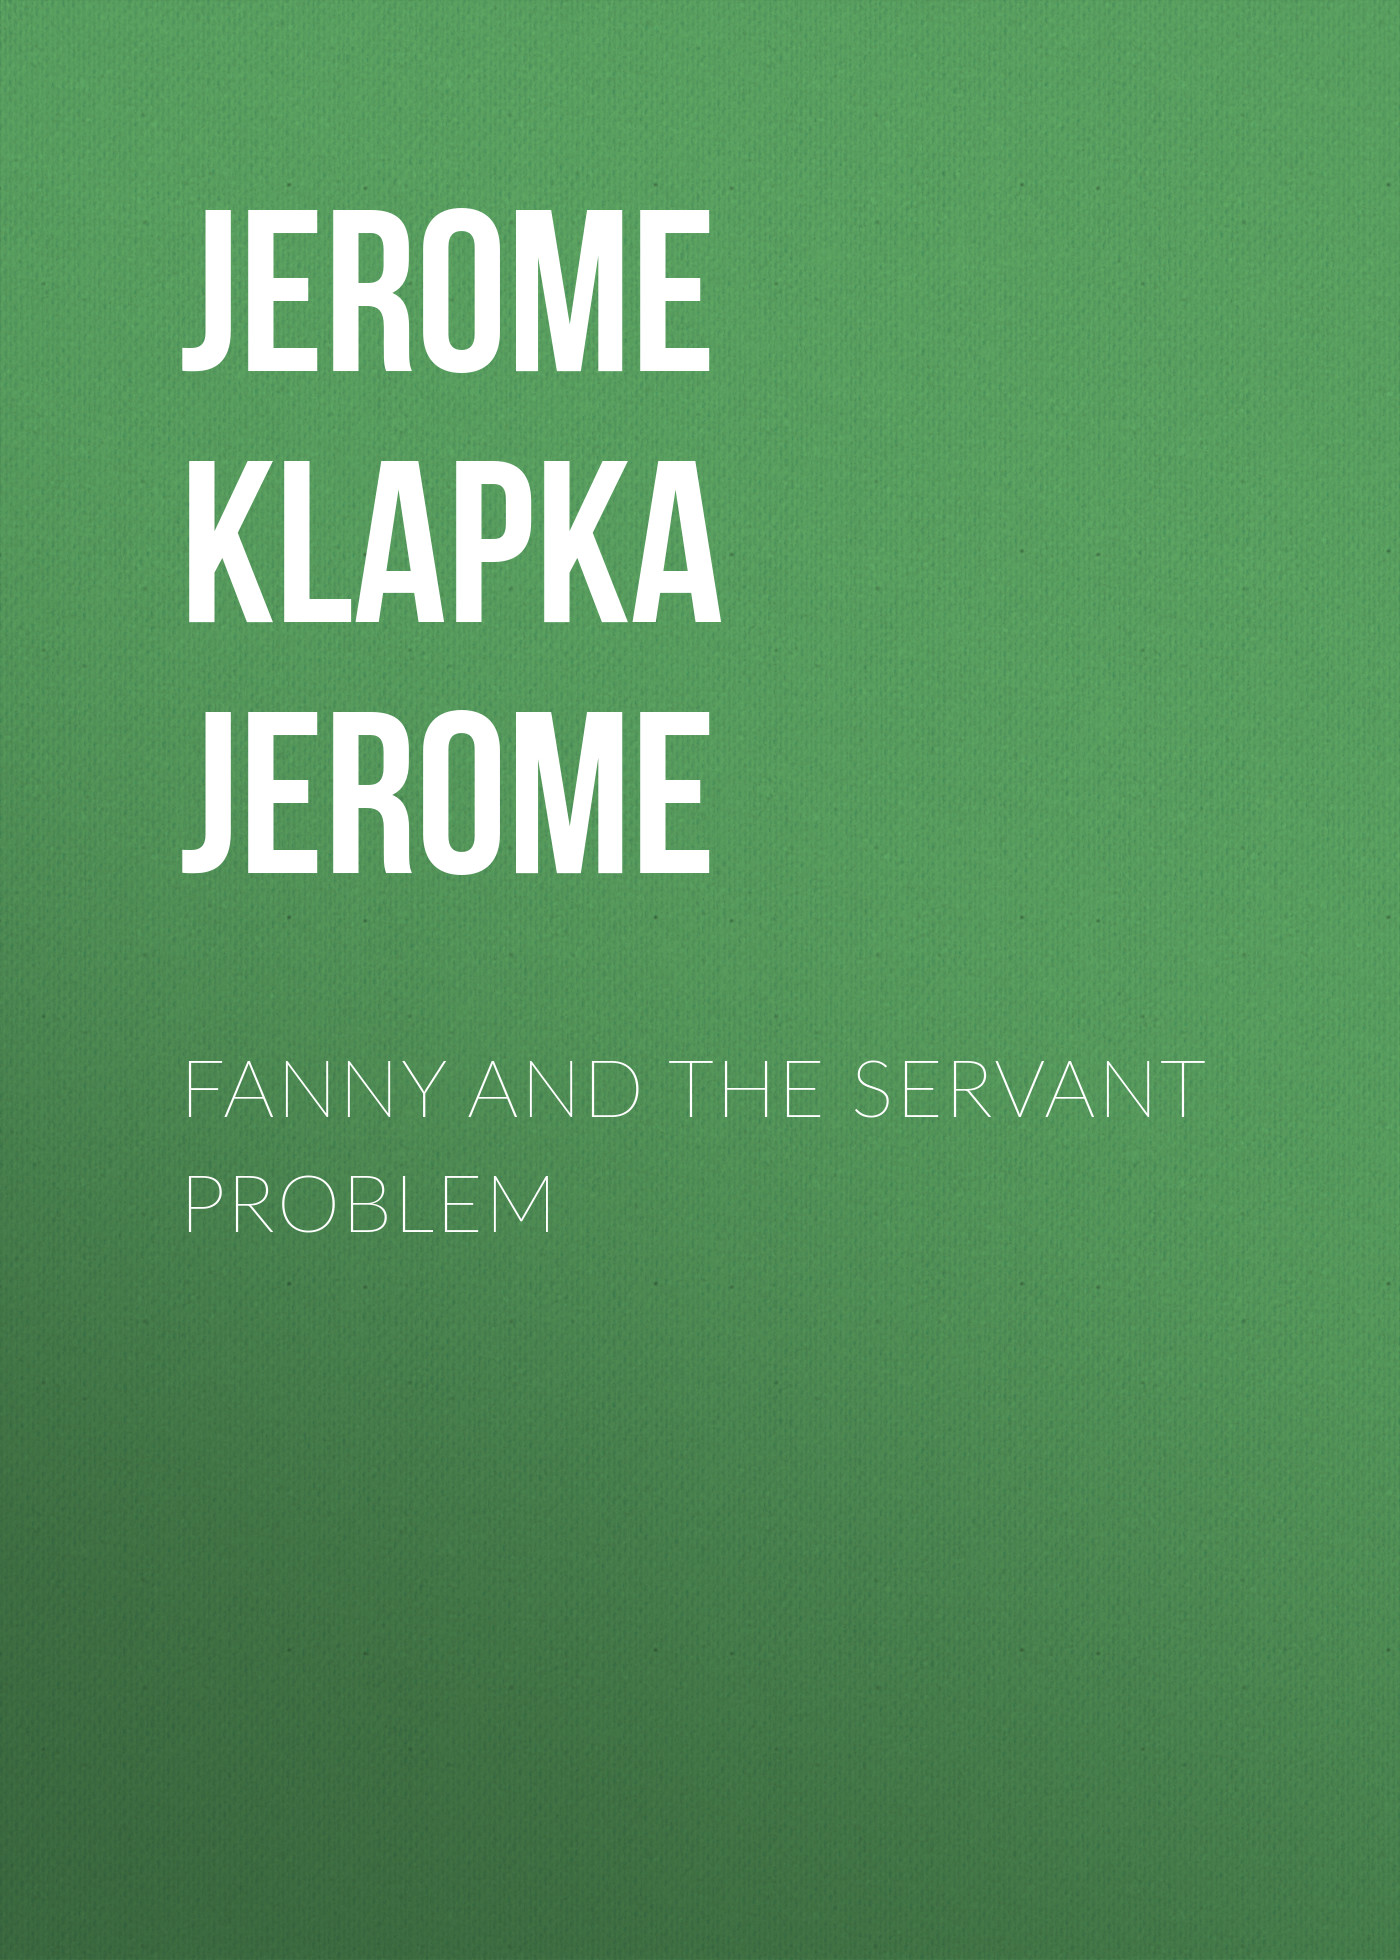 Джером Клапка Джером Fanny and the Servant Problem jamaica jamaica no problem